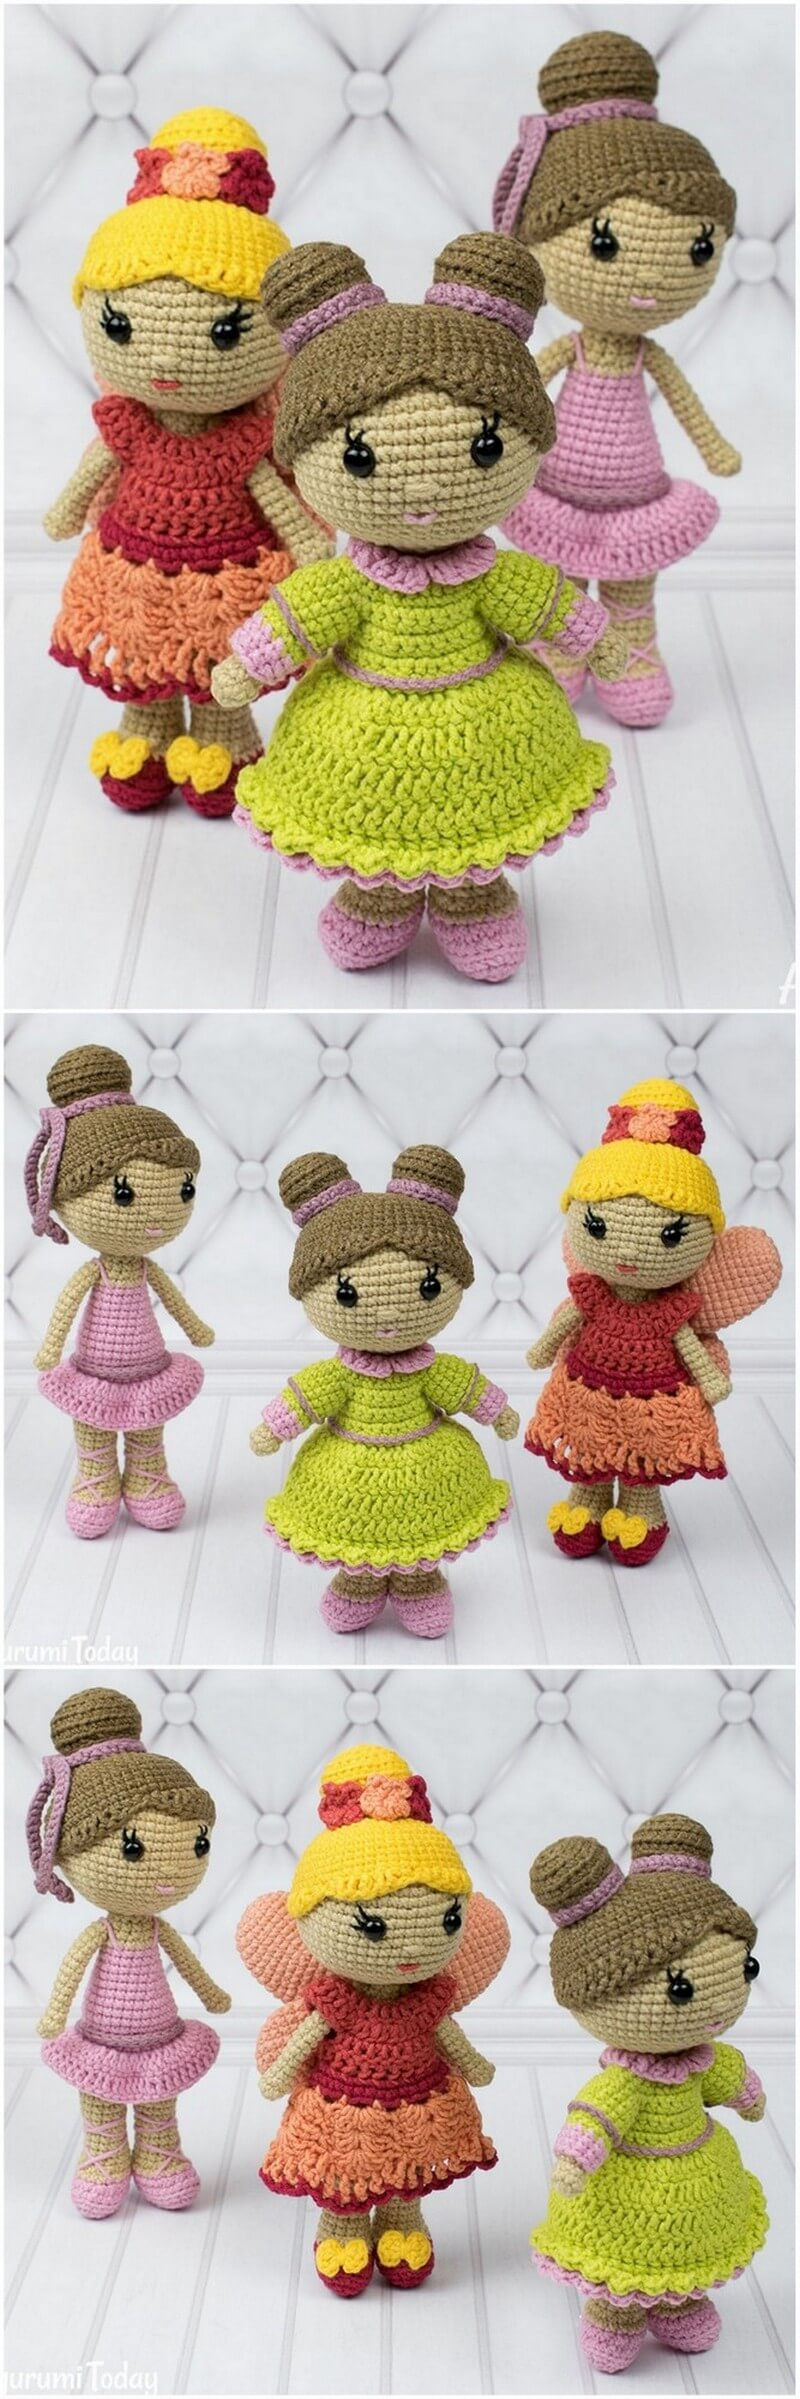 Crochet Amigurumi Doll Pattern (33)